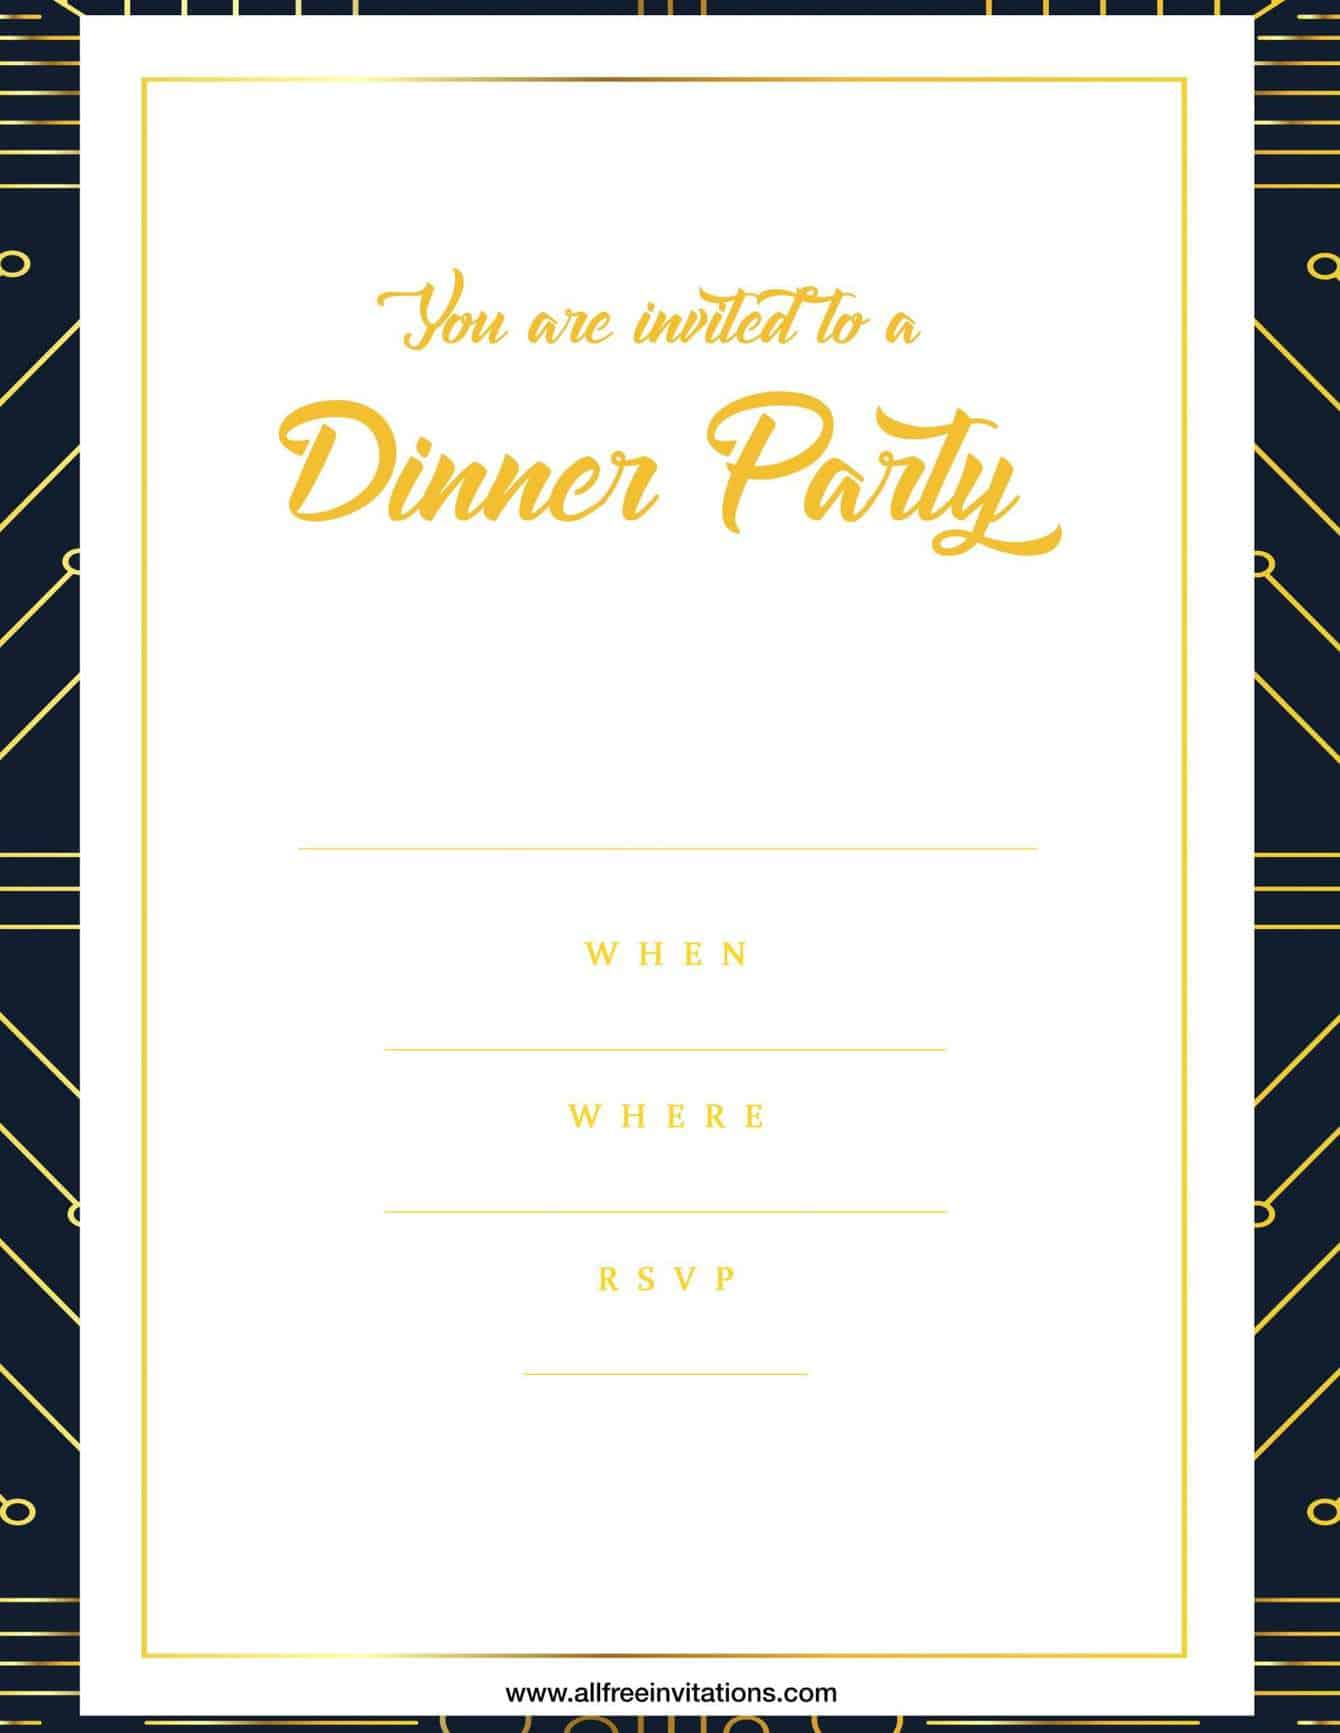 Dinner party invitation simple modern design